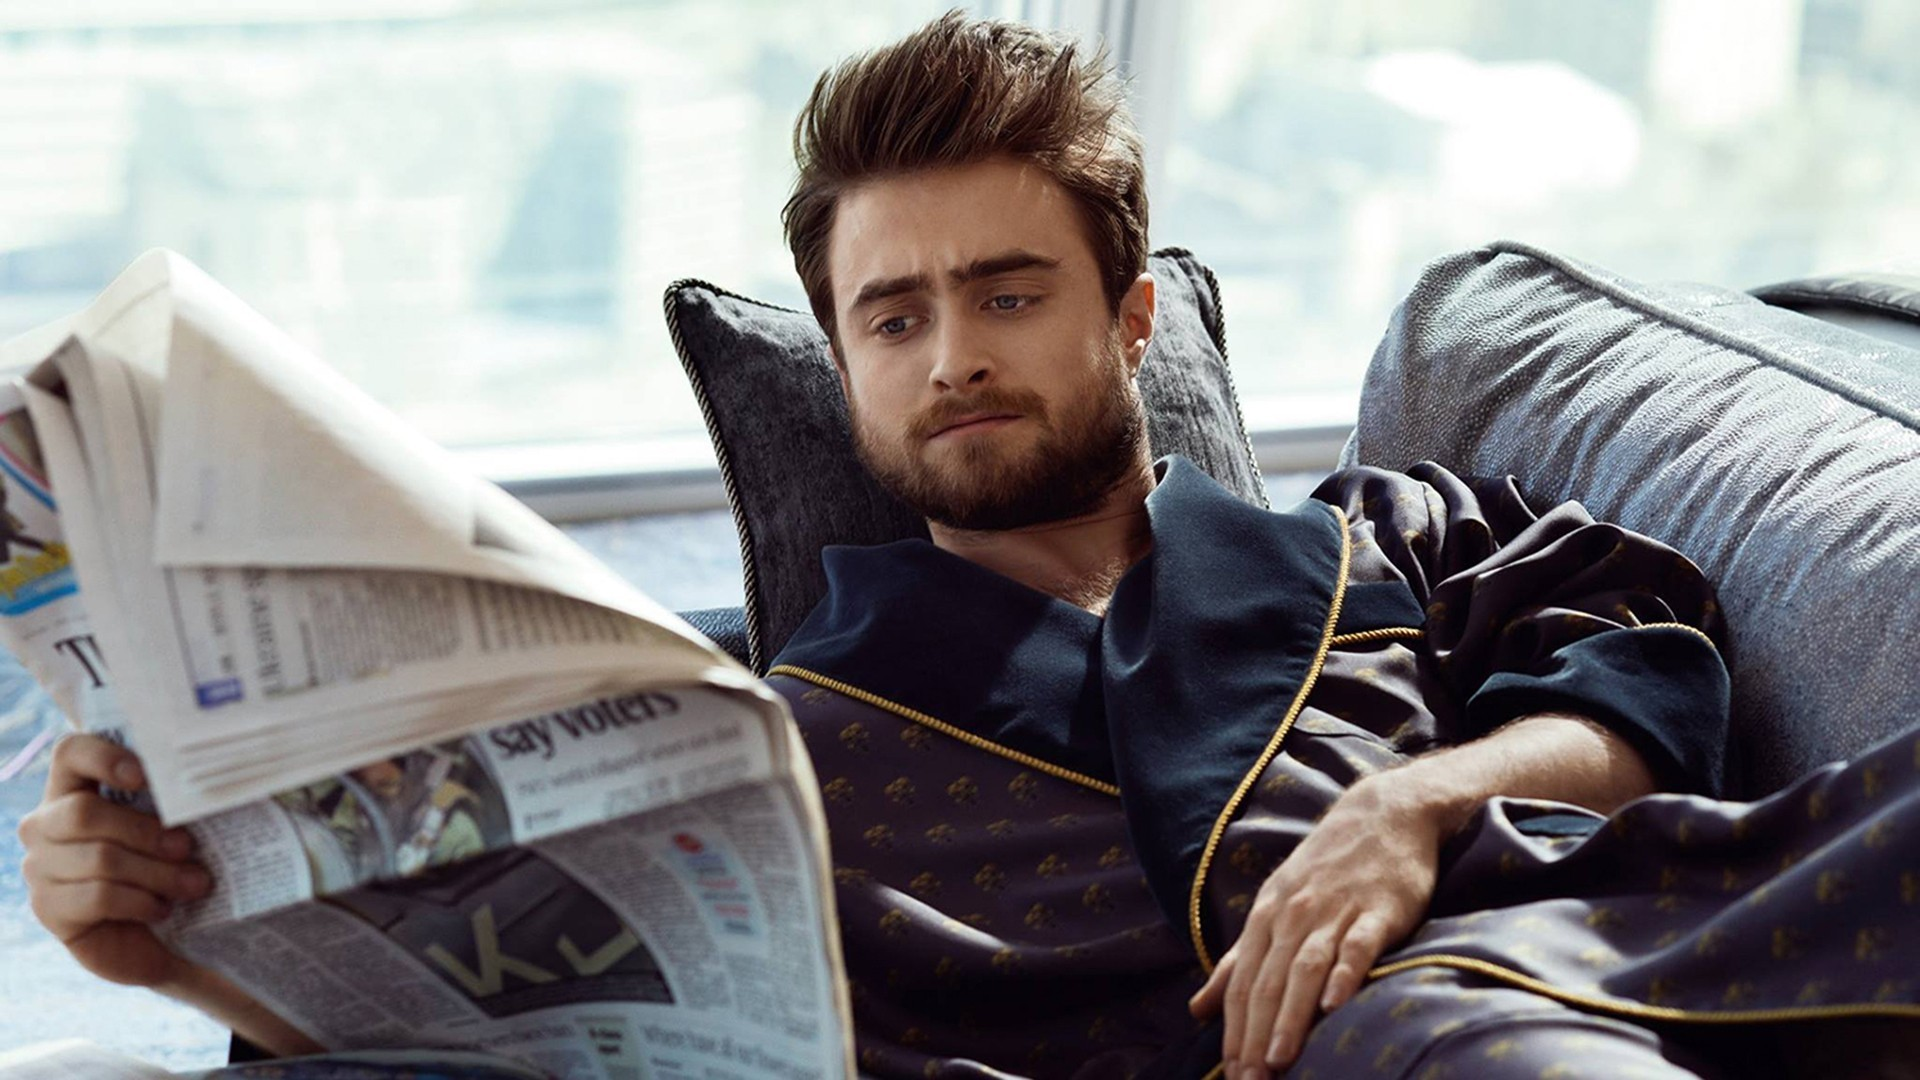 radcliffe hd wallpapers num2 - photo #21